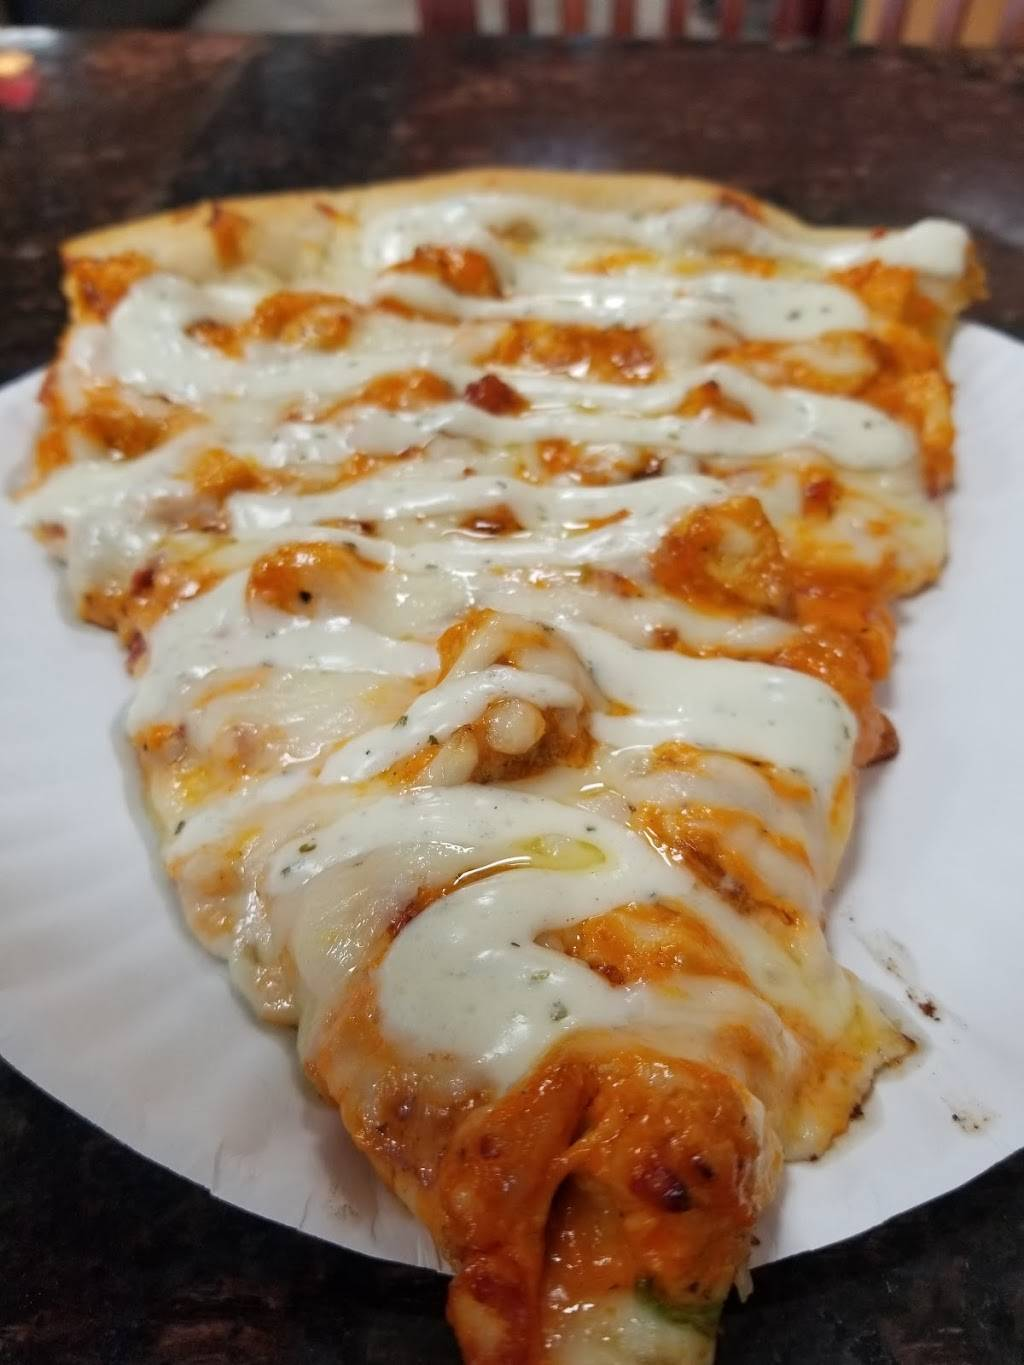 Richies Pizza of Deer Park   meal delivery   540 Commack Rd, Deer Park, NY 11729, USA   6315868000 OR +1 631-586-8000